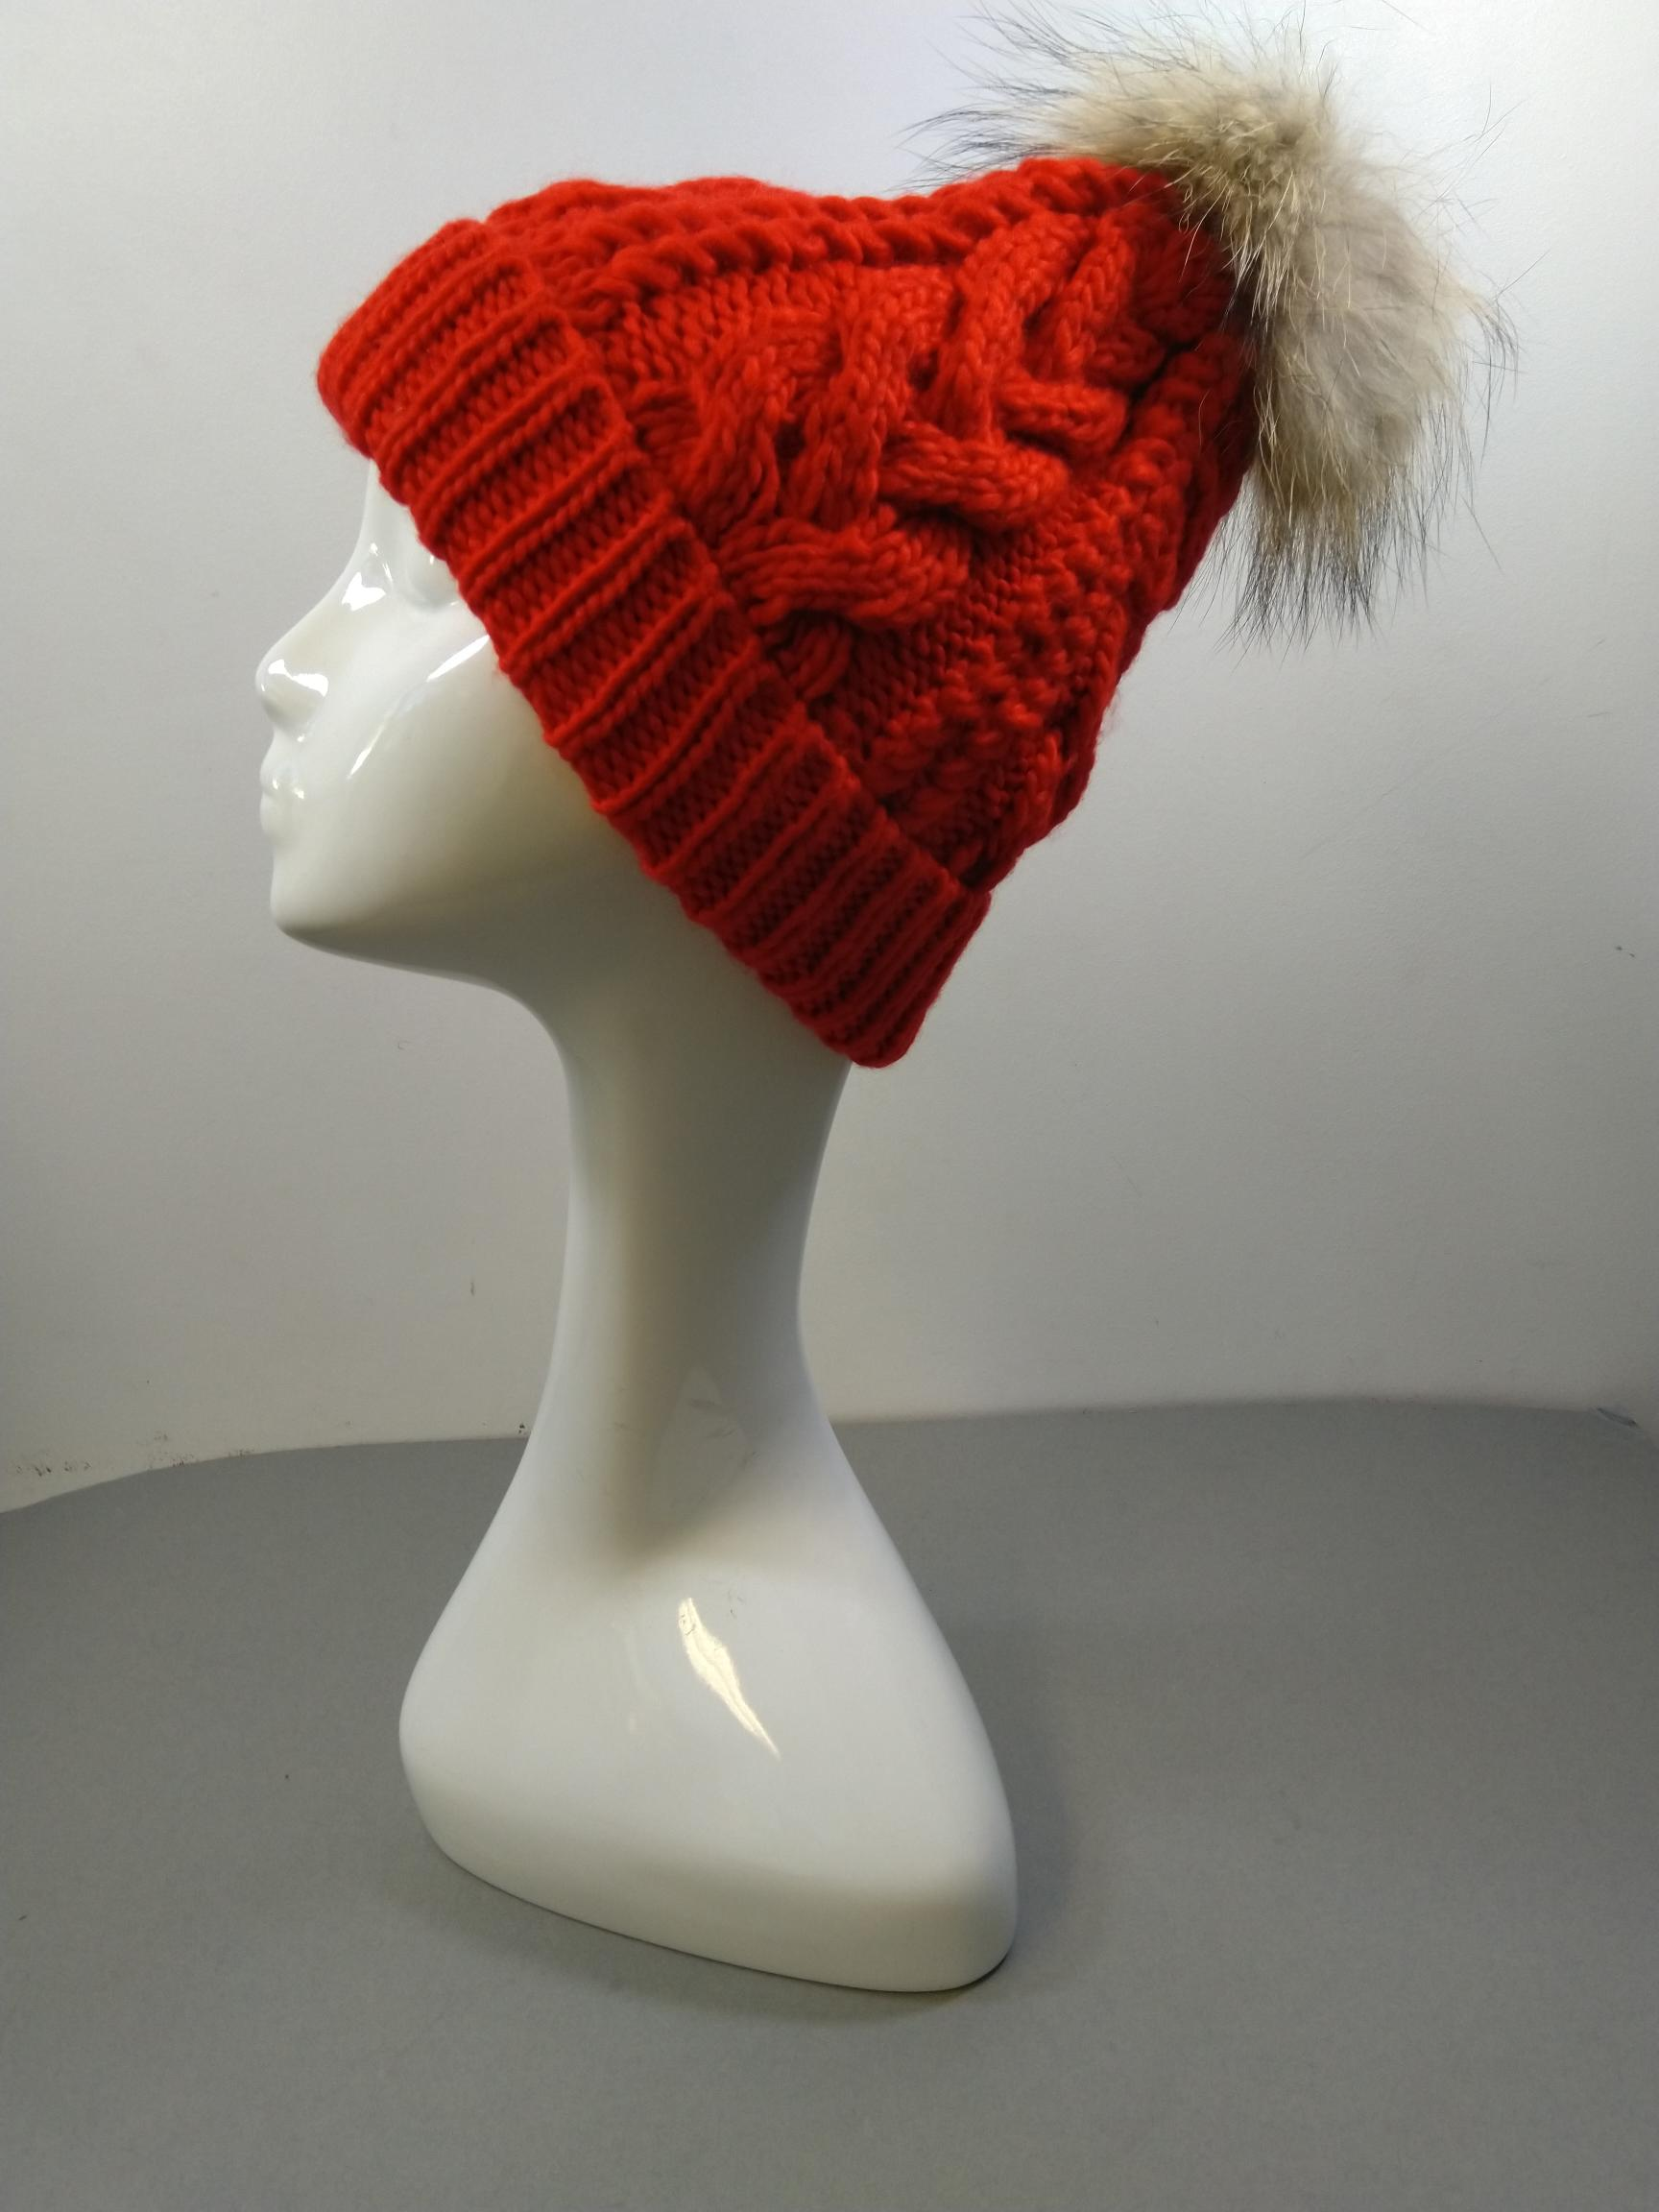 Sommerville Job Lot Of 59 Hand Cable Knitted Red Hats With Fur Pom Pom One Size BNWT